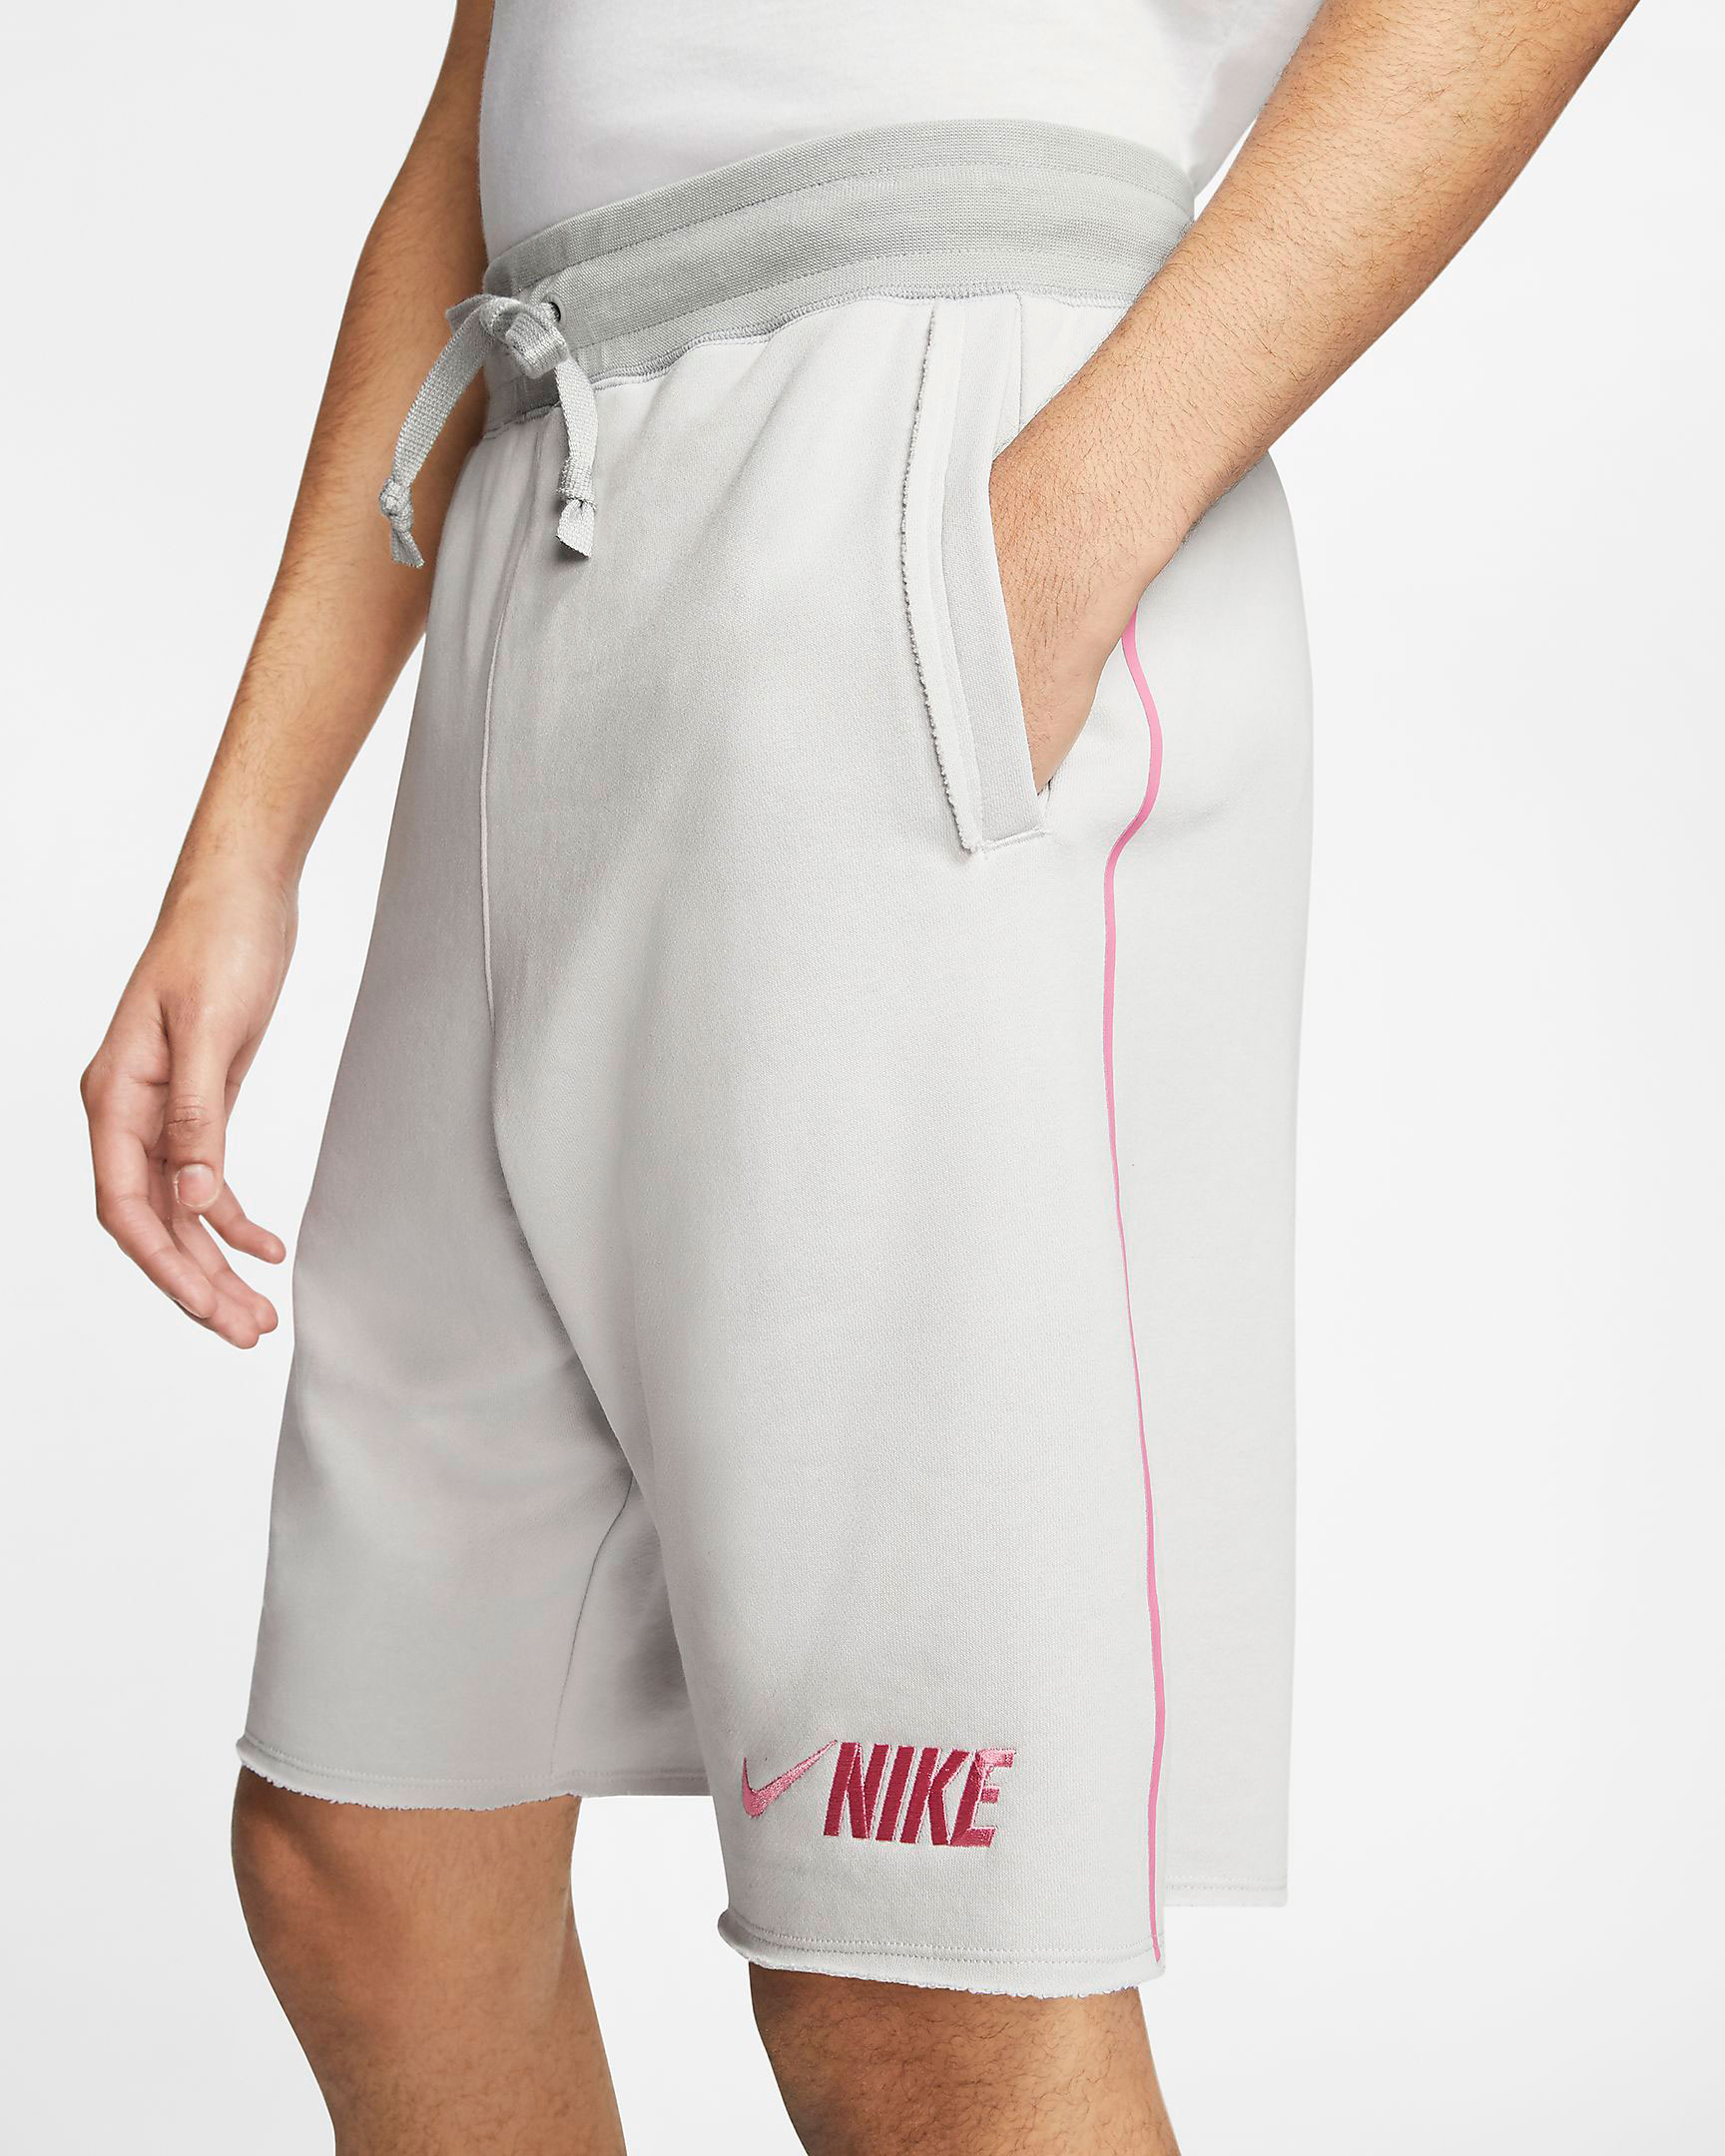 nike-air-max-90-rose-pink-shorts-1